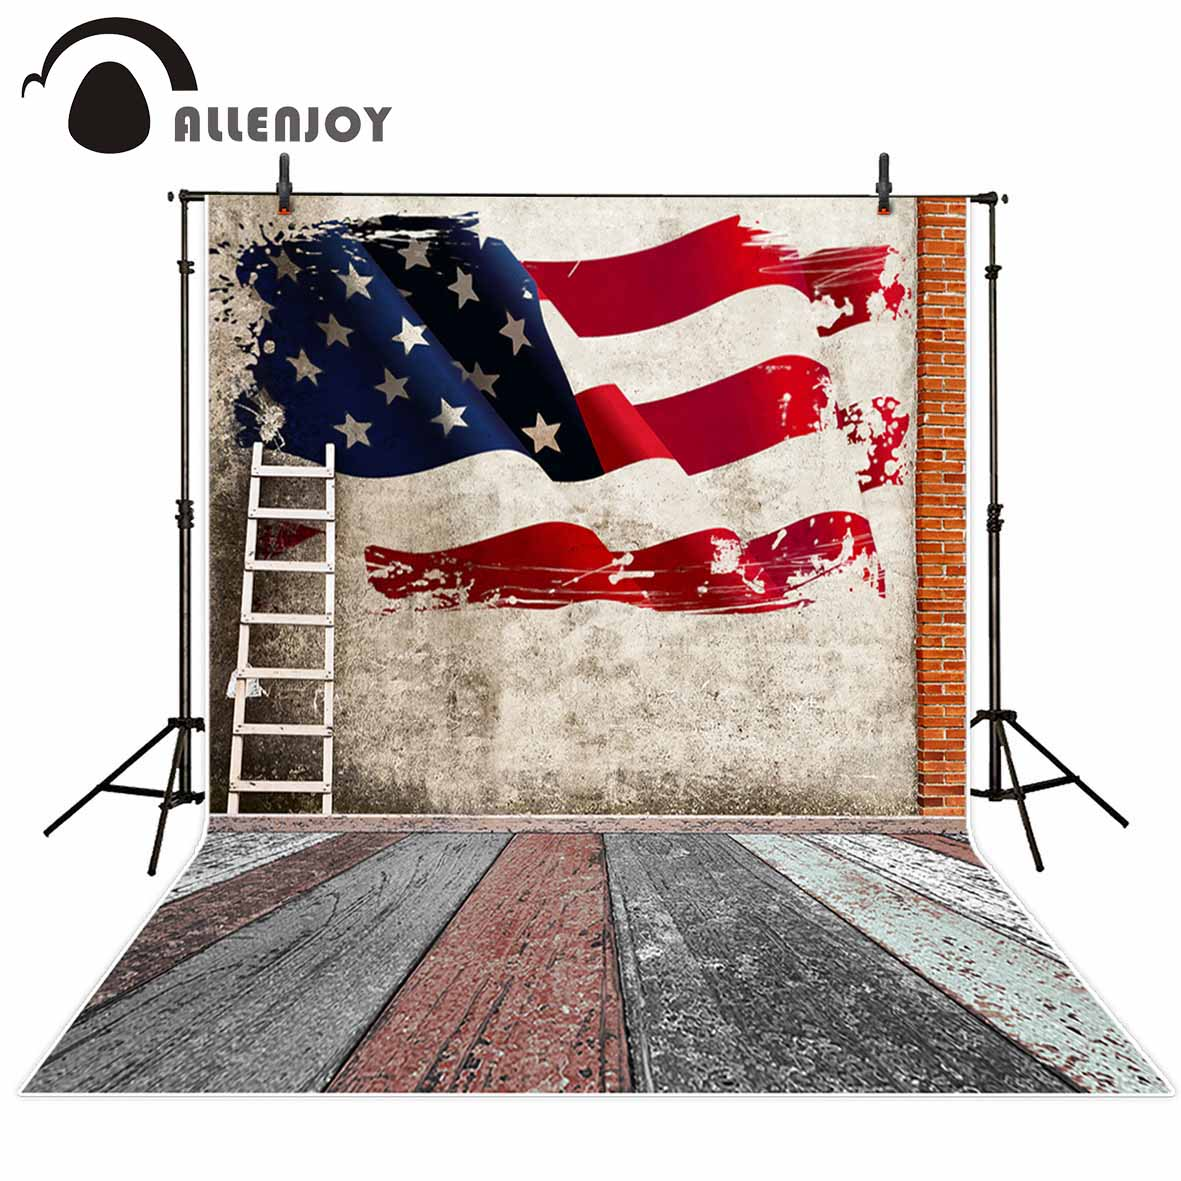 Allenjoy vinyl photography backdrop Ladders American flags old Vintage wall new background photocall customize photo printed